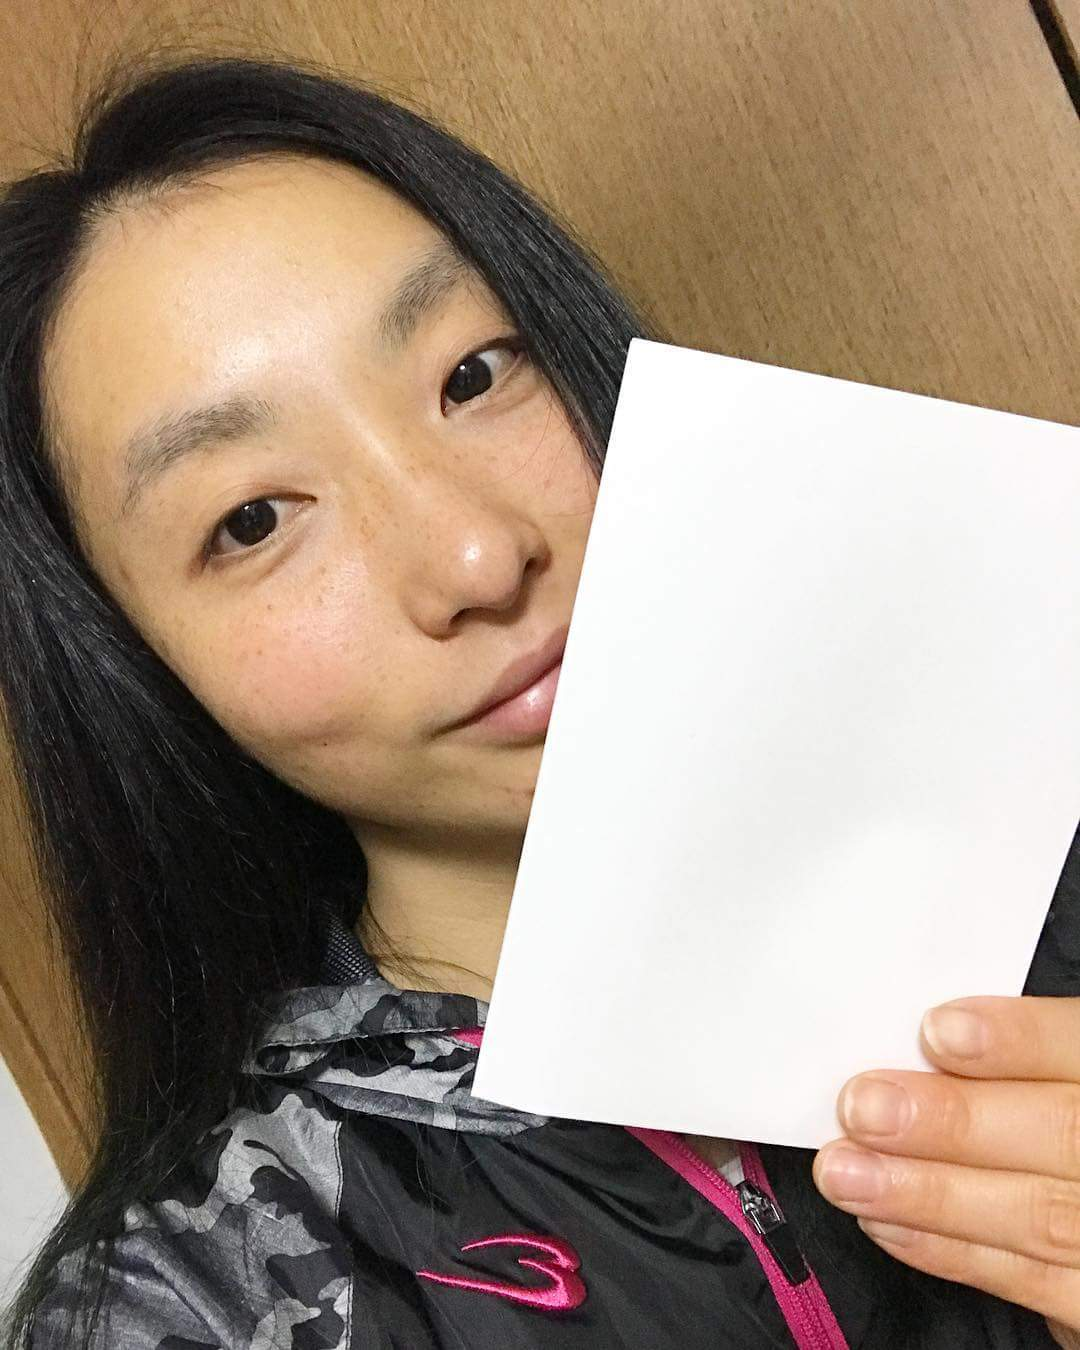 Japan's Mari Amimoto raises the #WhiteCard for #IDSDP2018